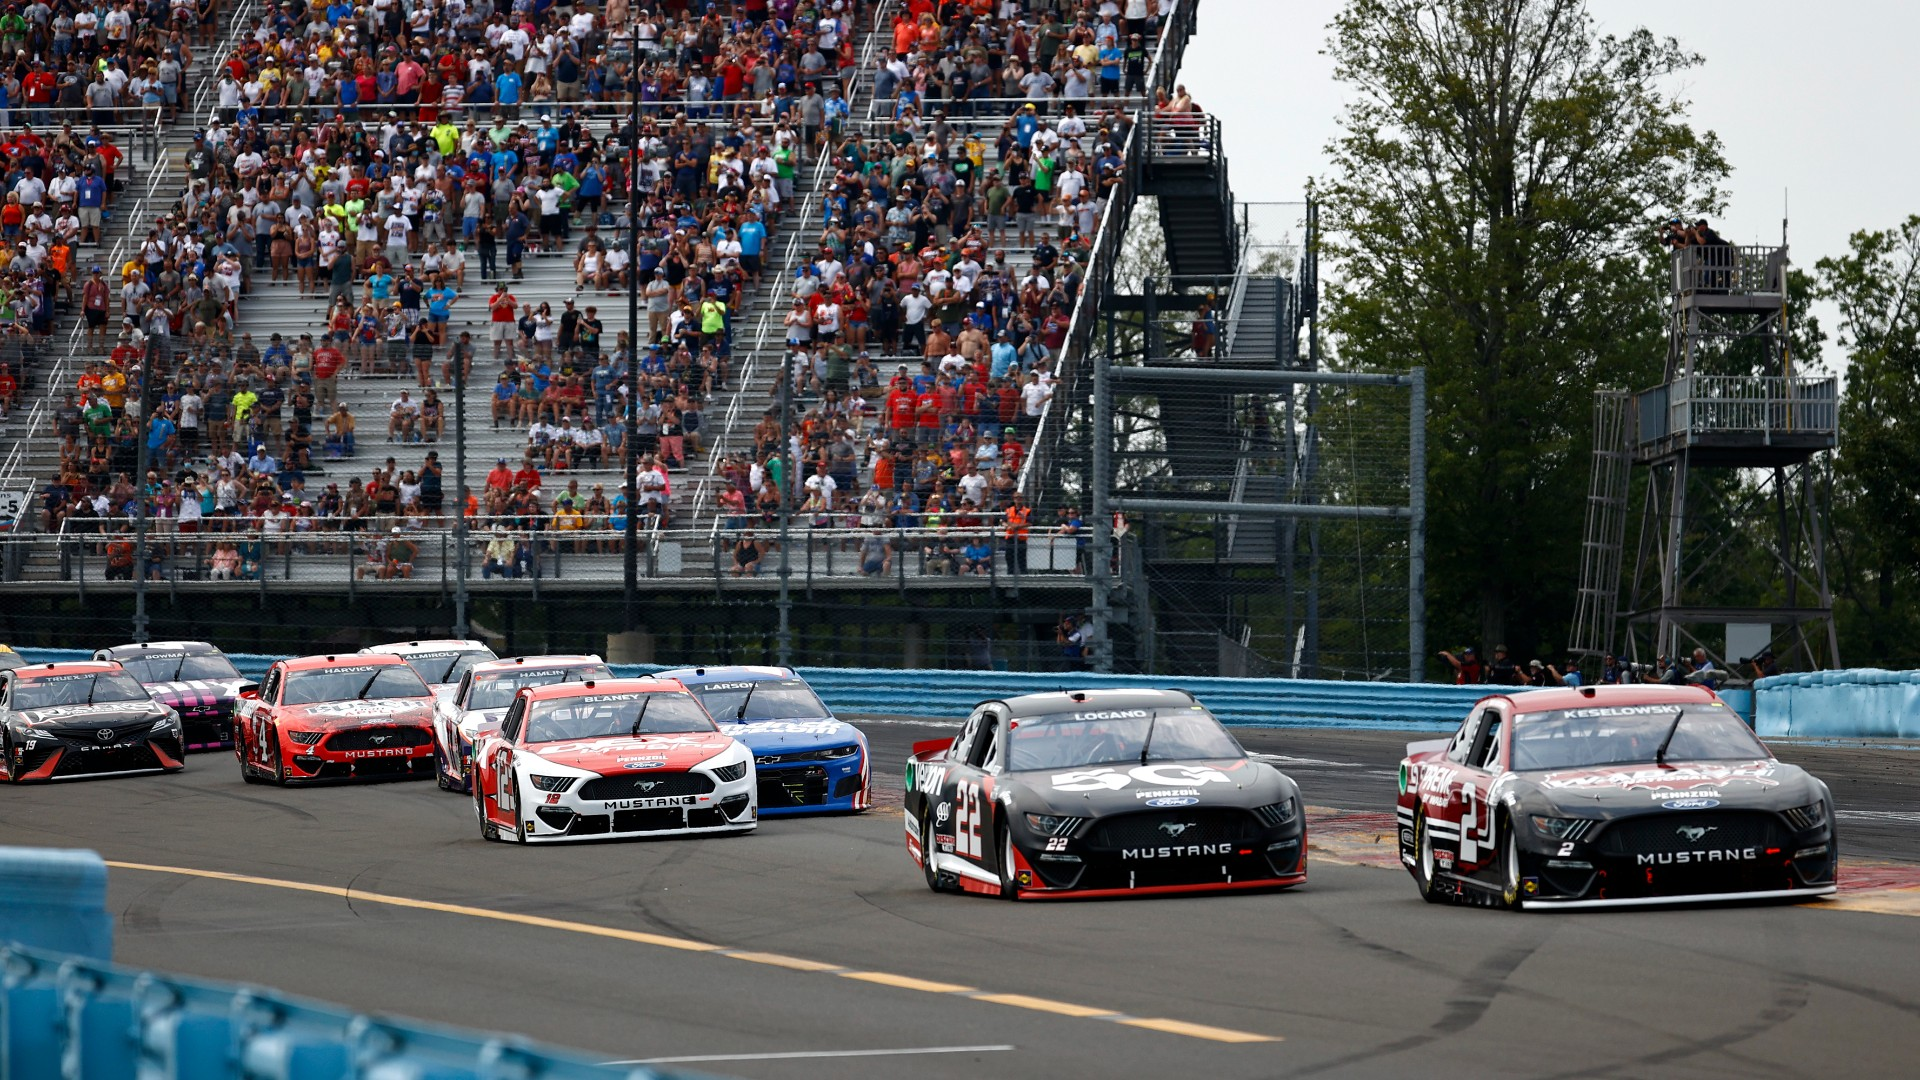 Who won the NASCAR race yesterday?  Full results from Sunday's race at Watkins Glen